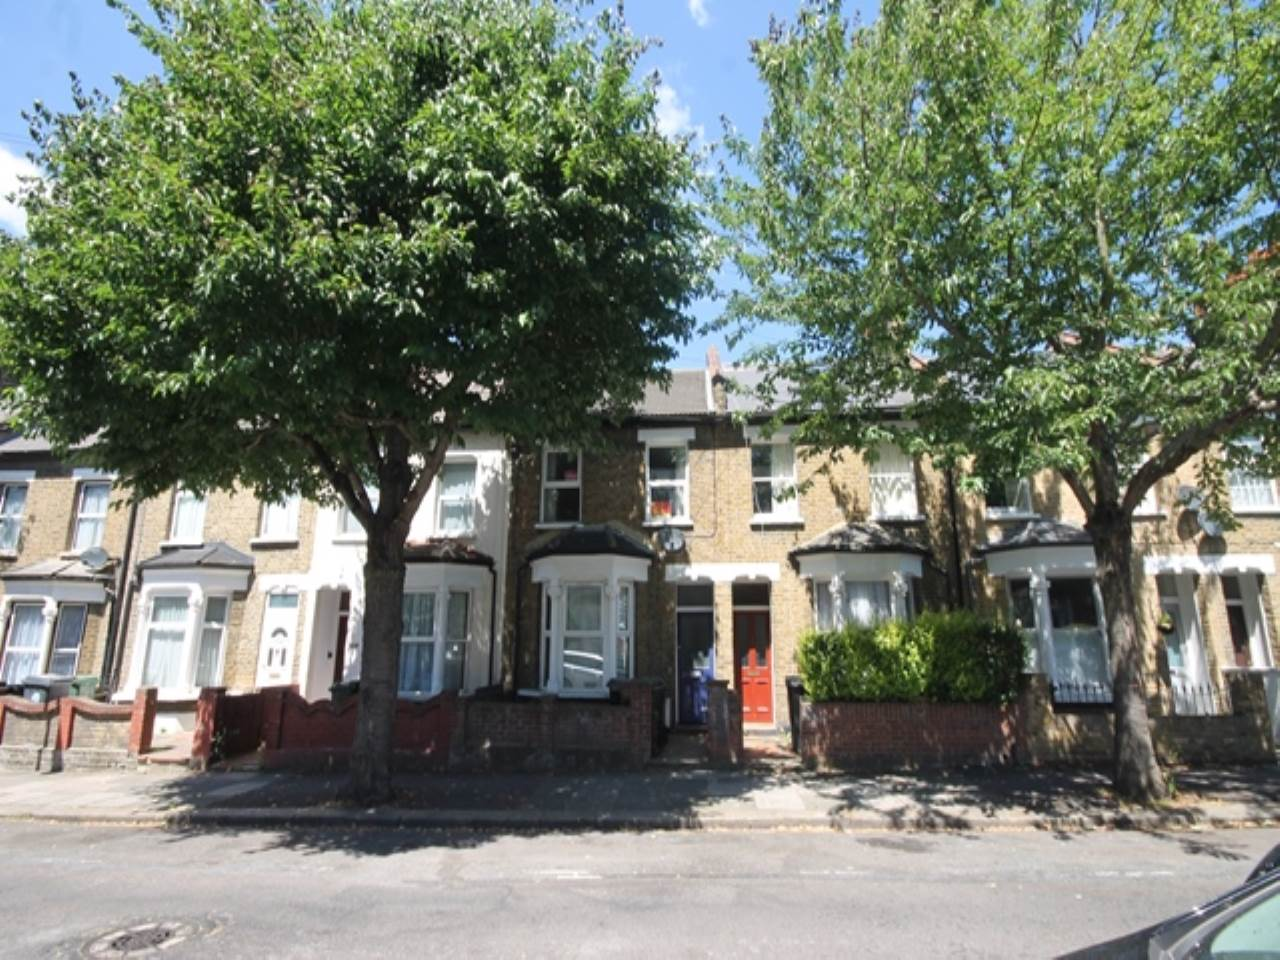 4 bed house to rent in Canning Road, Walthamstow, E17